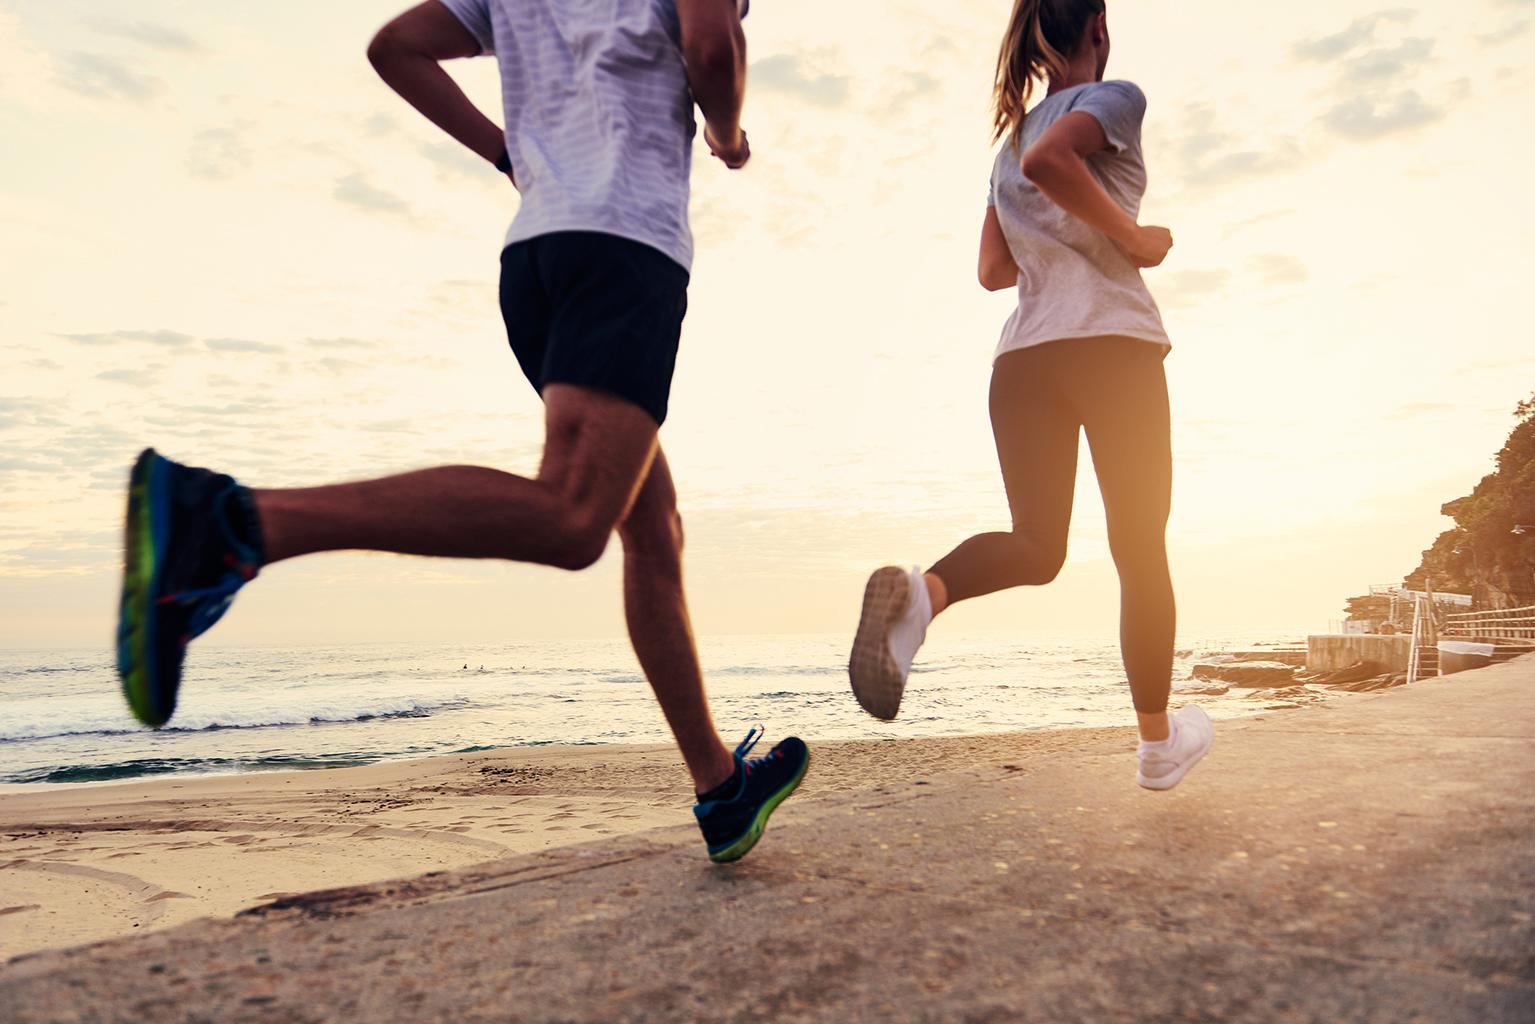 Running Can Help You Outrun Heart Failure, Cancer, New Research Says